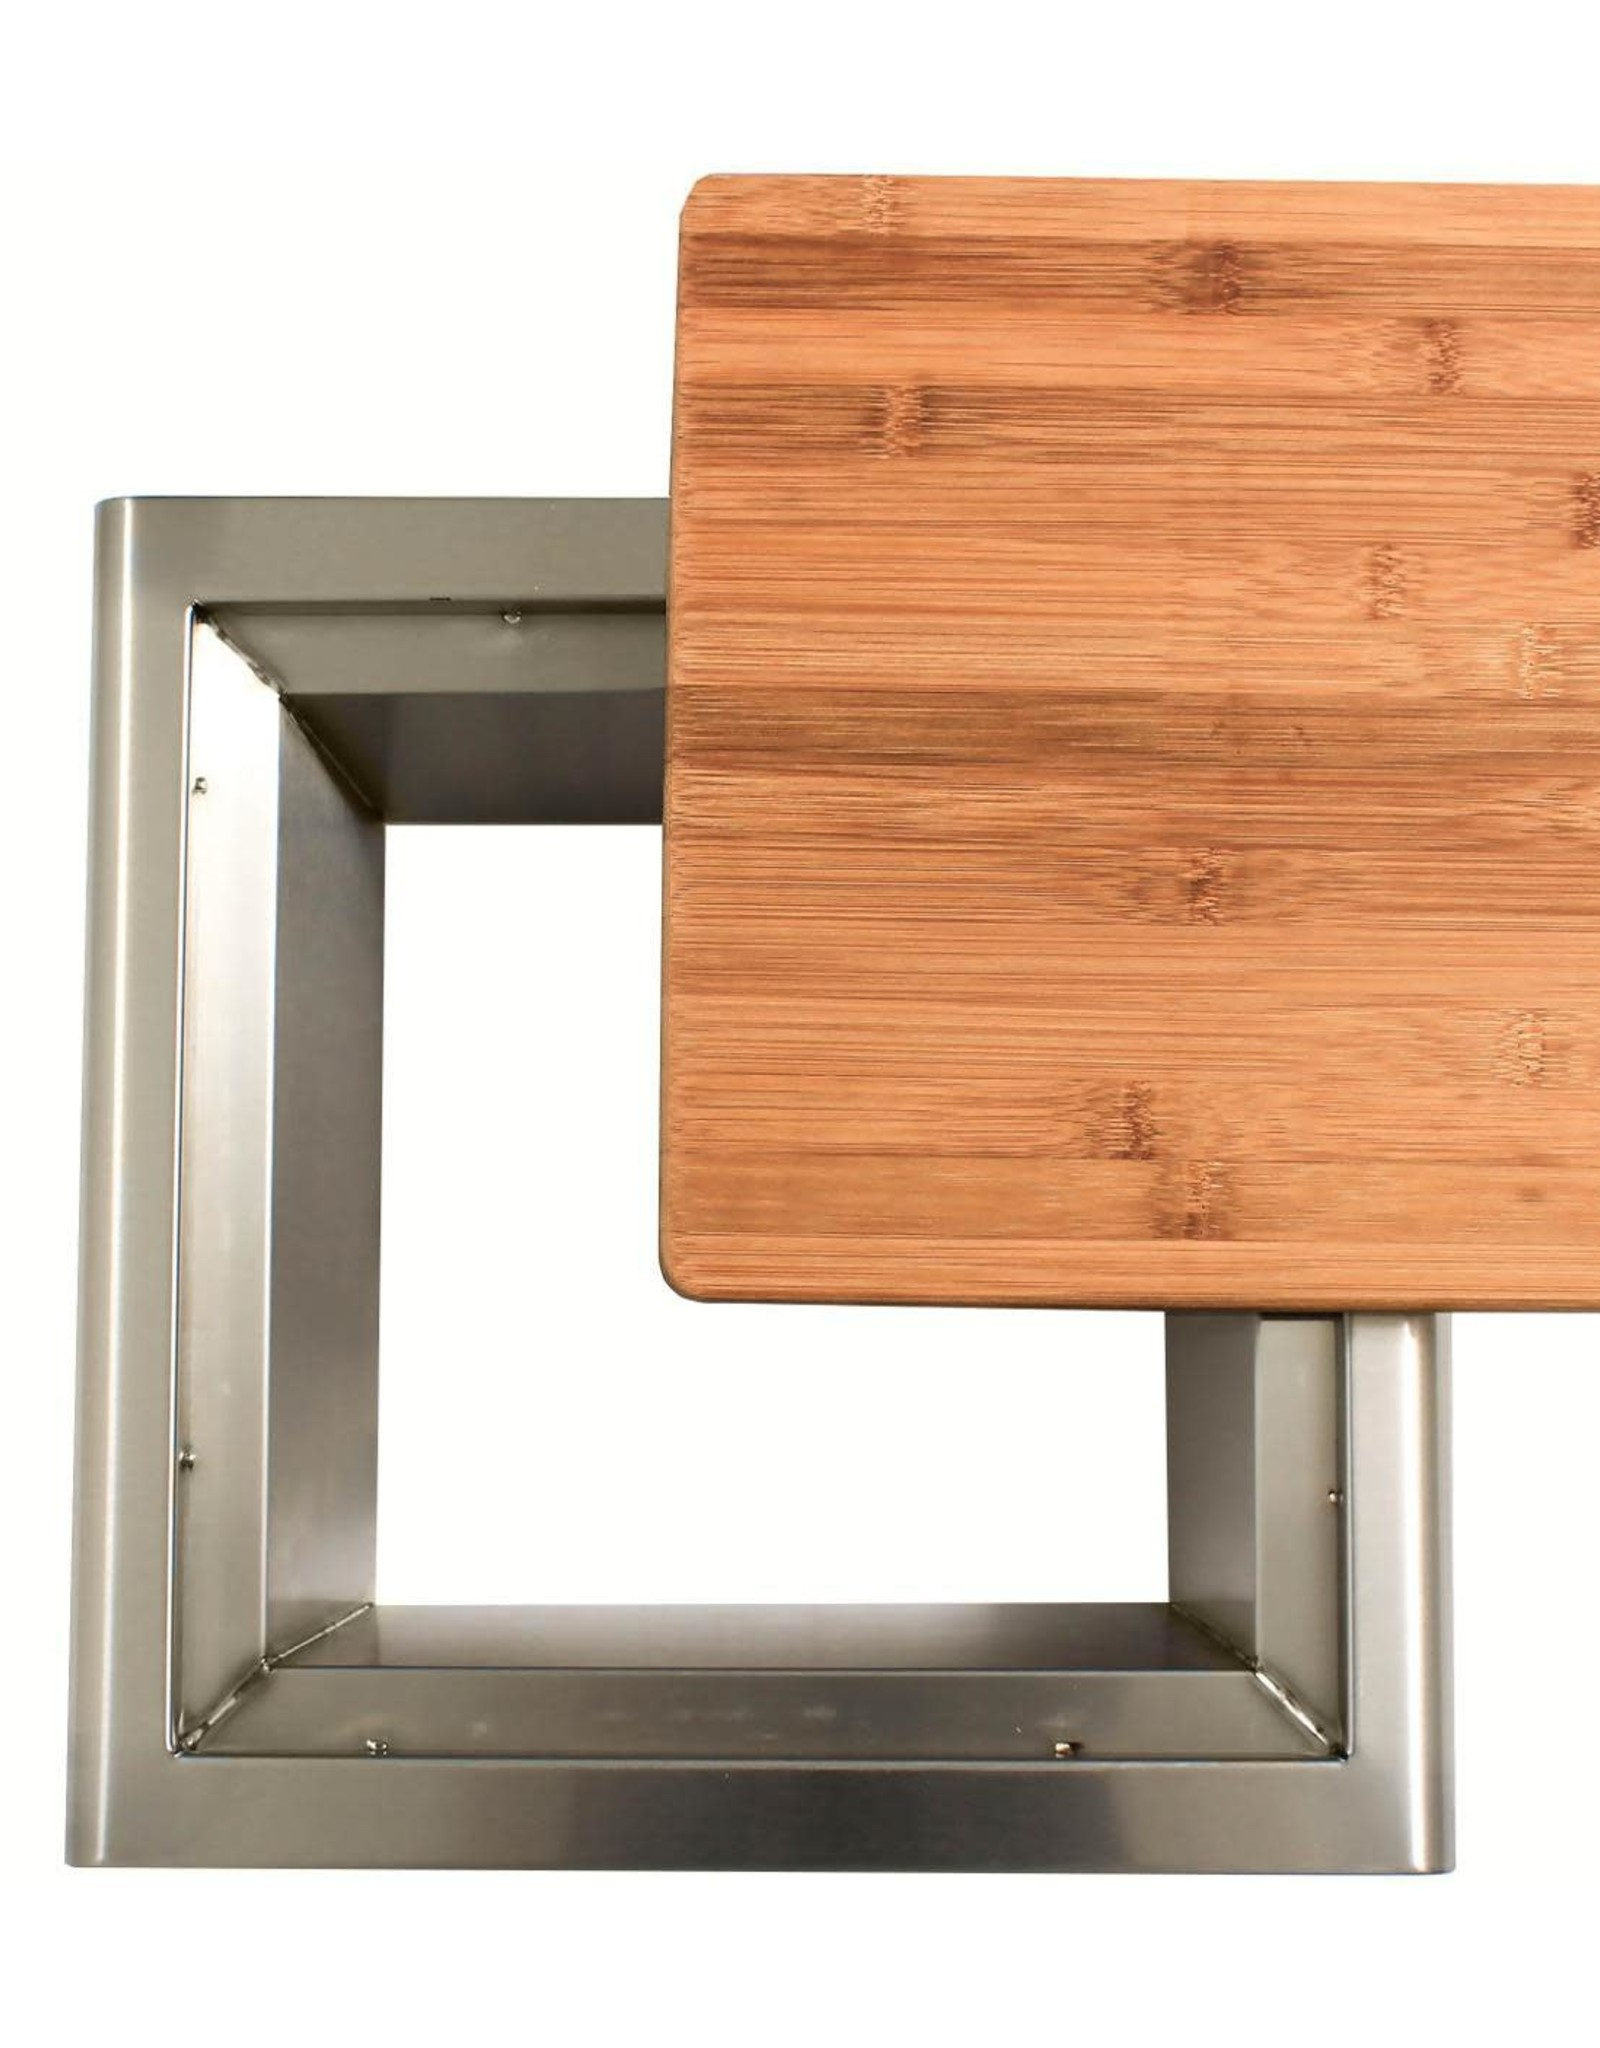 Blaze Outdoor Products Blaze 15-Inch Stainless Steel Trash Chute With Cutting Board - BLZ-TRC-CB